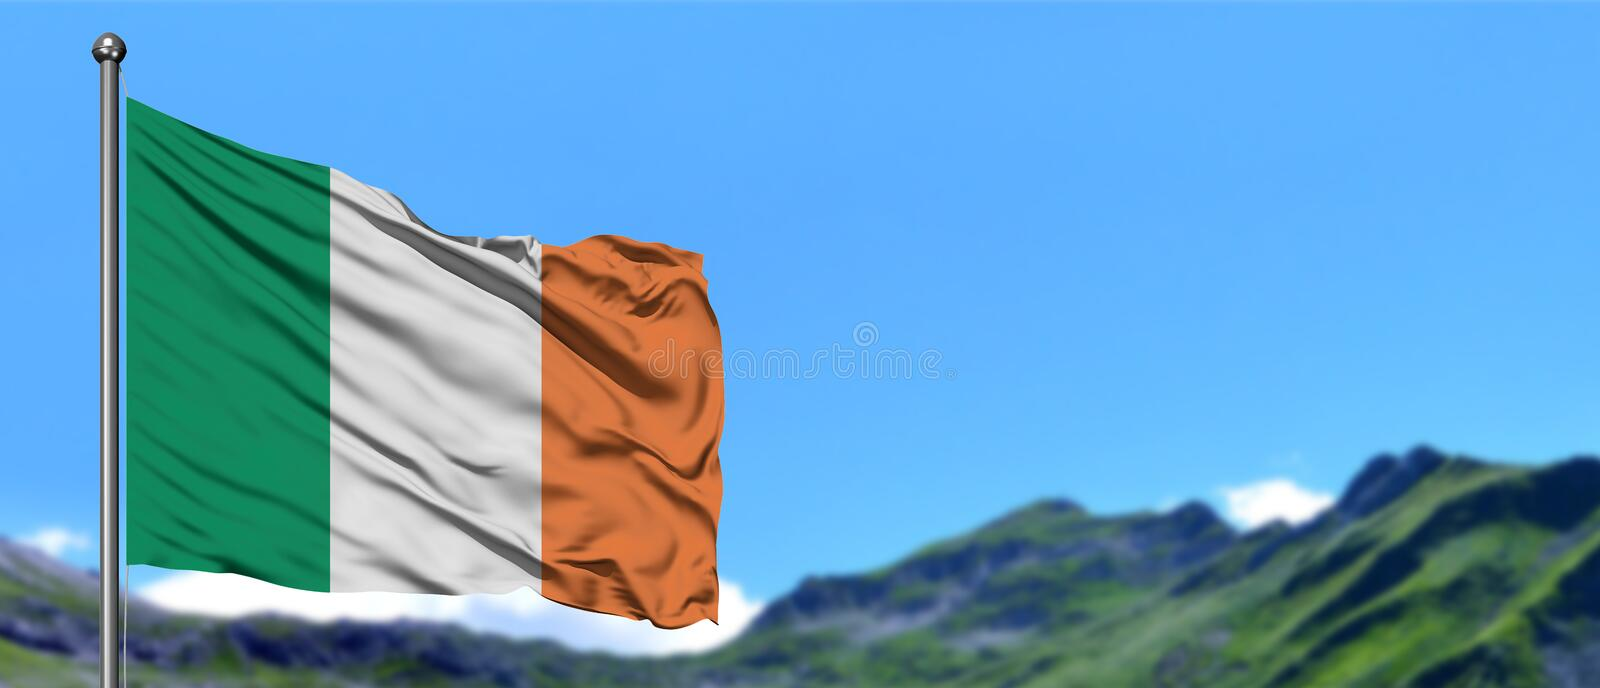 Ireland flag waving in the blue sky with green fields at mountain peak background. Nature theme stock photo